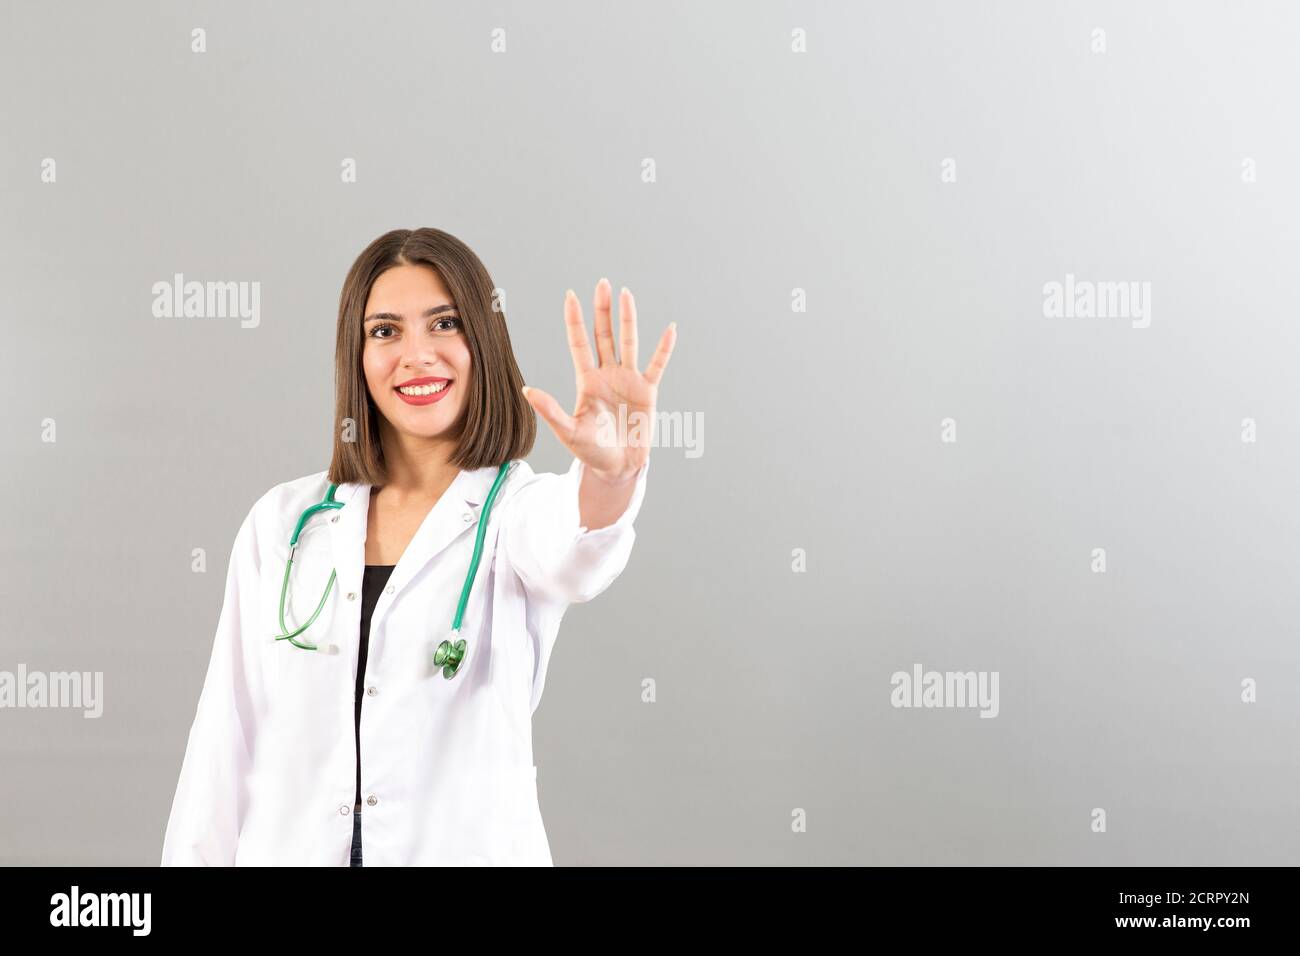 Beautiful smiling Turkish woman doctor portrait in studio she is confident mood, she is gesturing high five Stock Photo